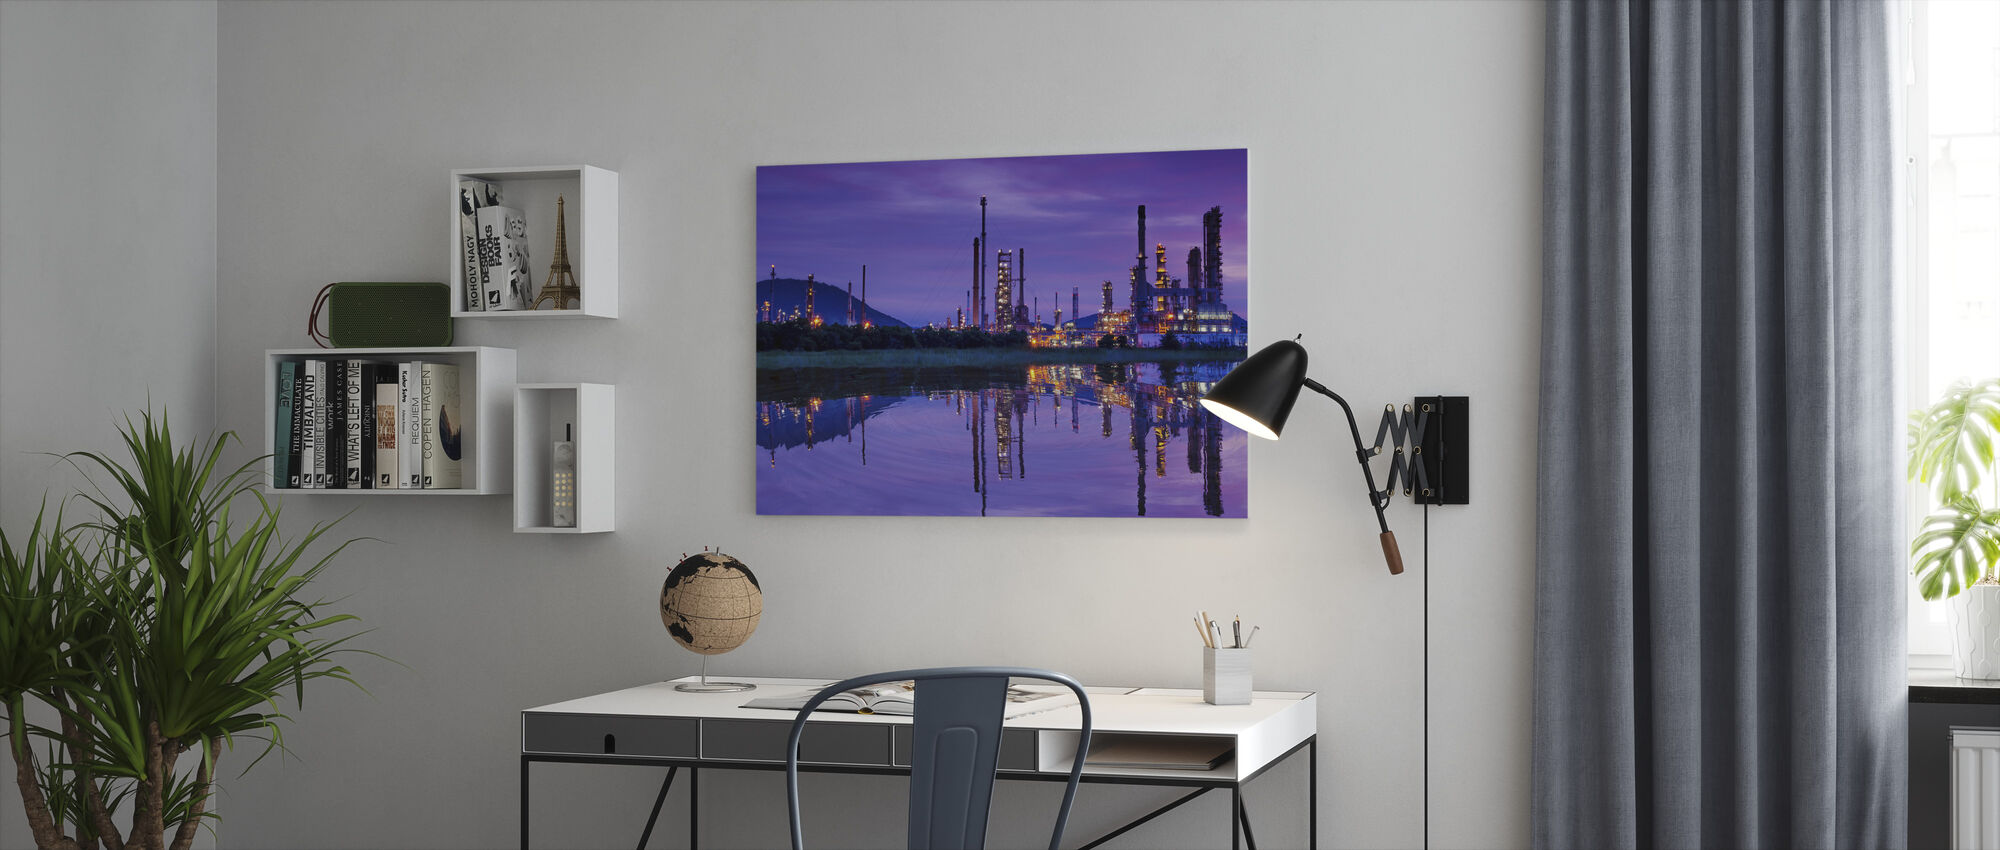 Petrochemical Industry - Canvas print - Office